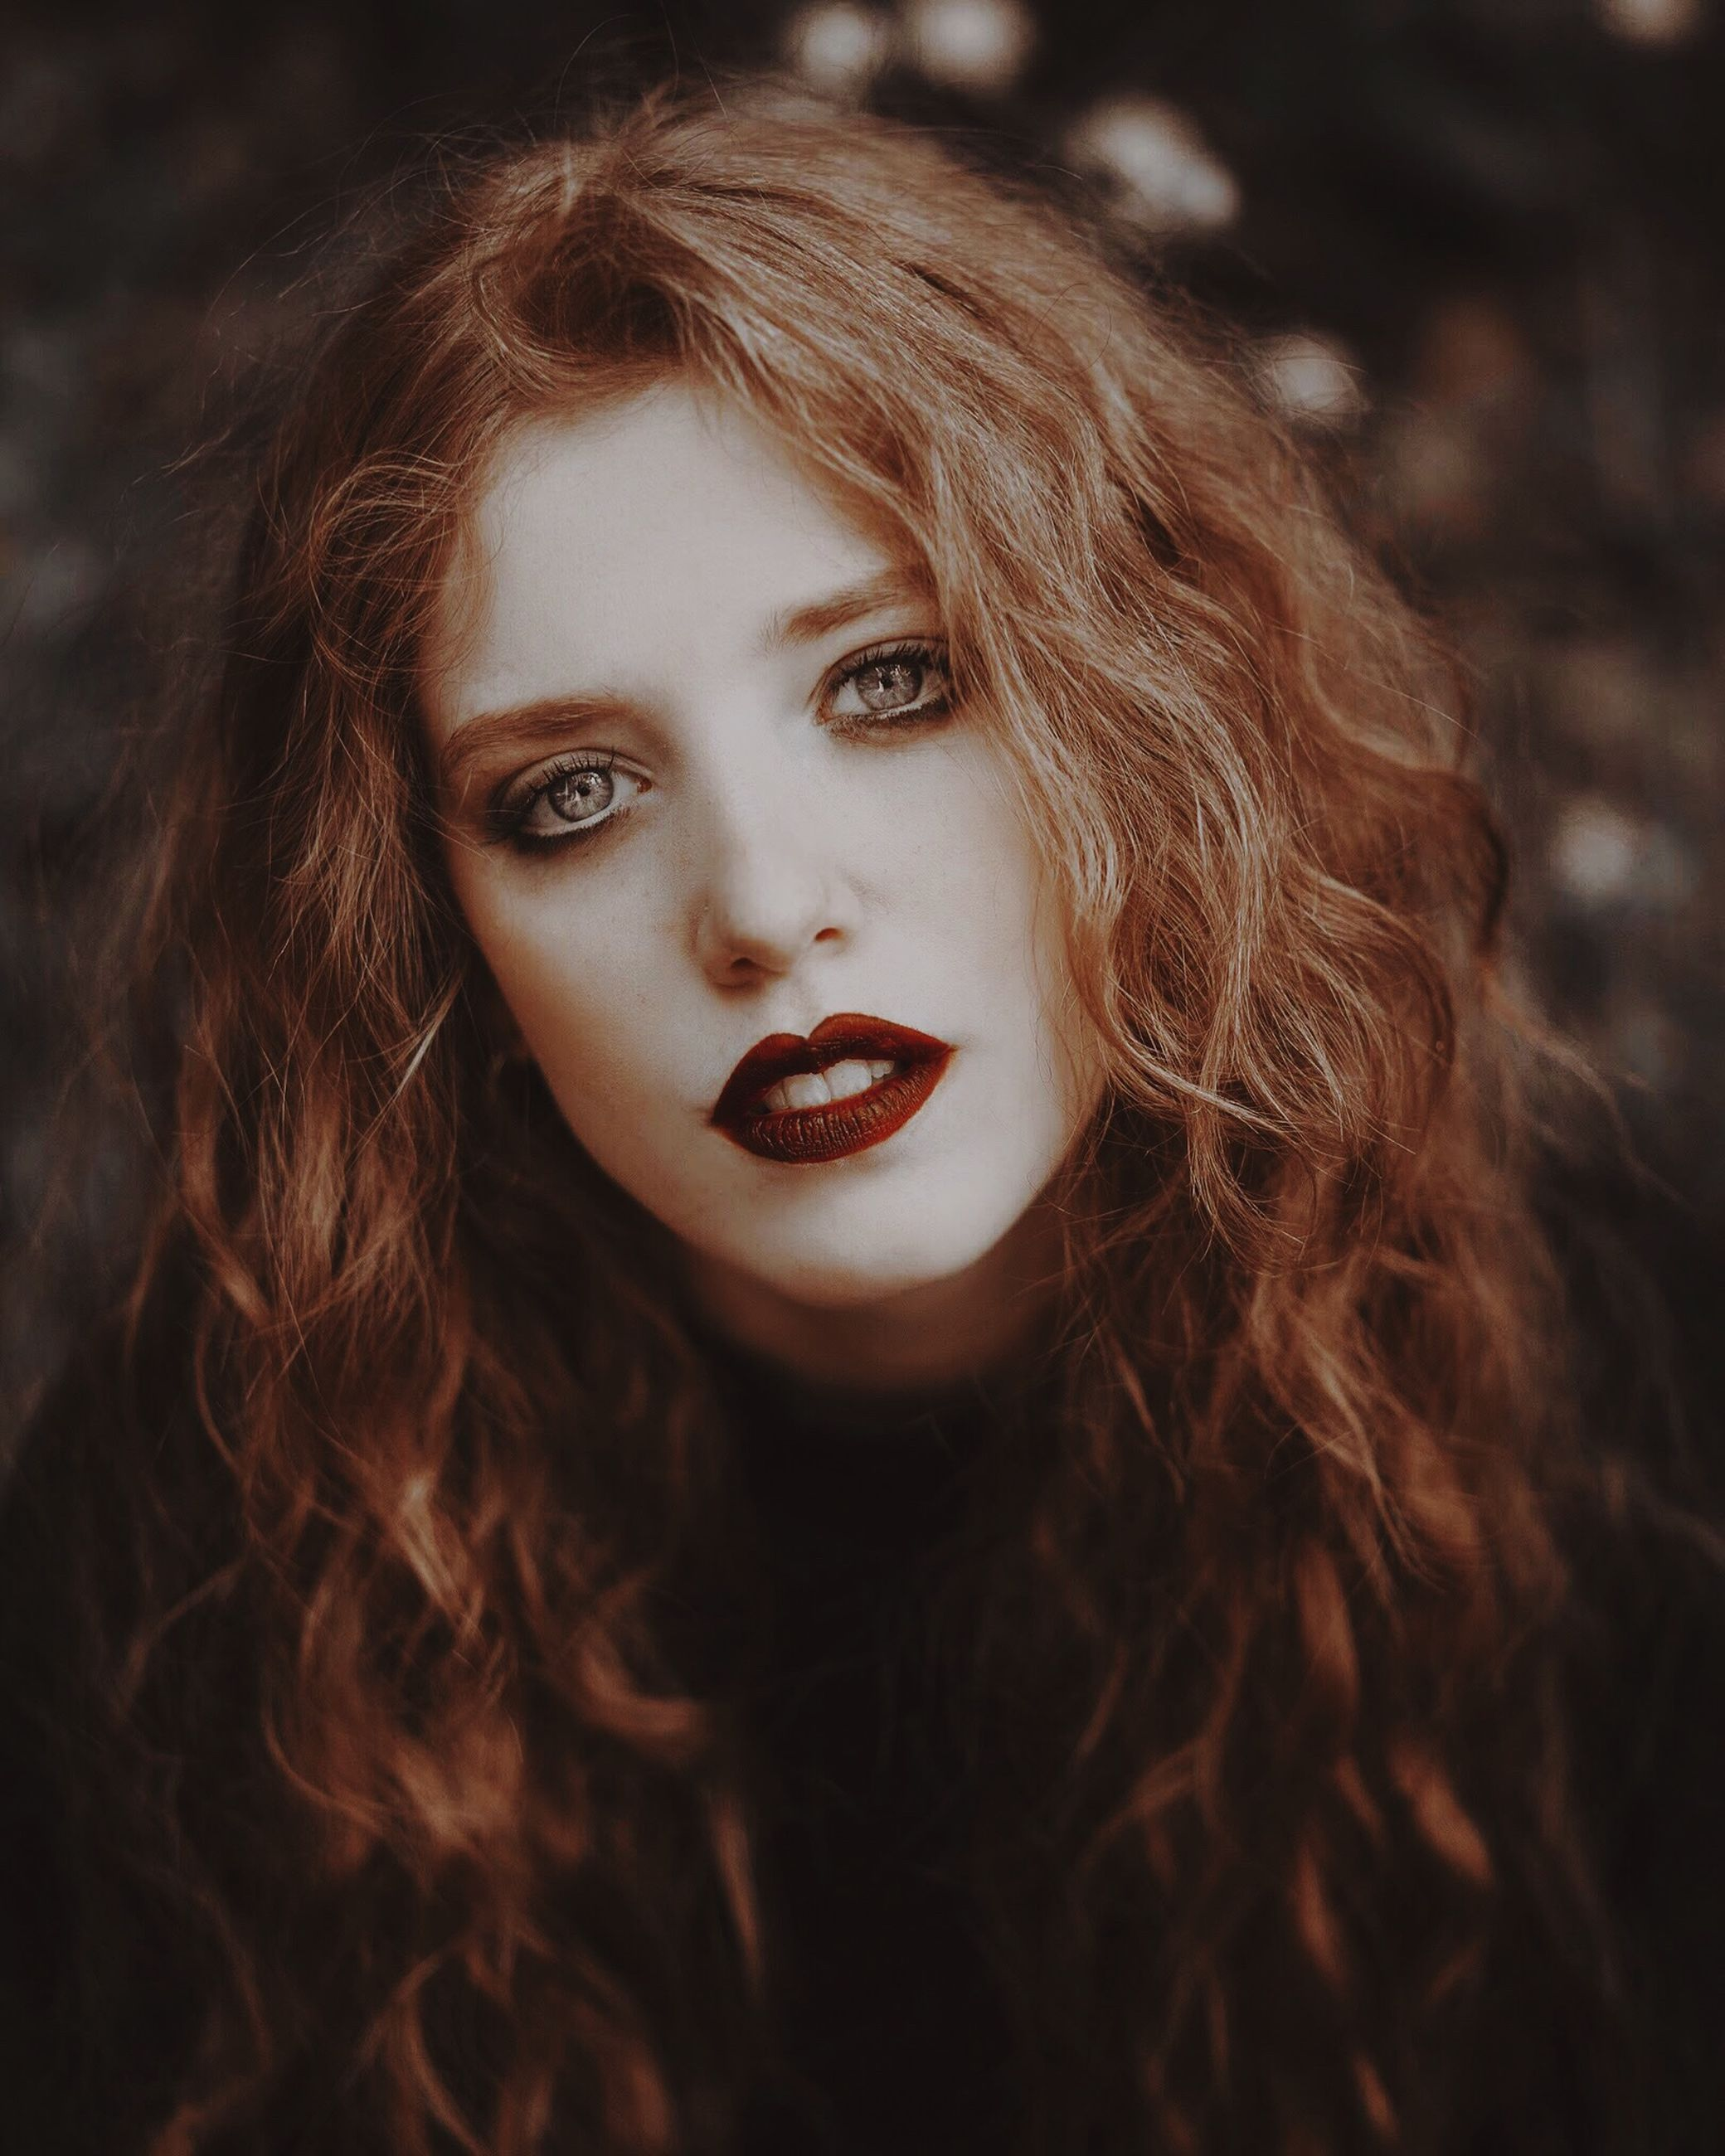 portrait, hair, hairstyle, one person, looking at camera, long hair, headshot, young adult, lipstick, young women, beautiful woman, women, beauty, make-up, front view, curly hair, focus on foreground, real people, adult, wavy hair, teenager